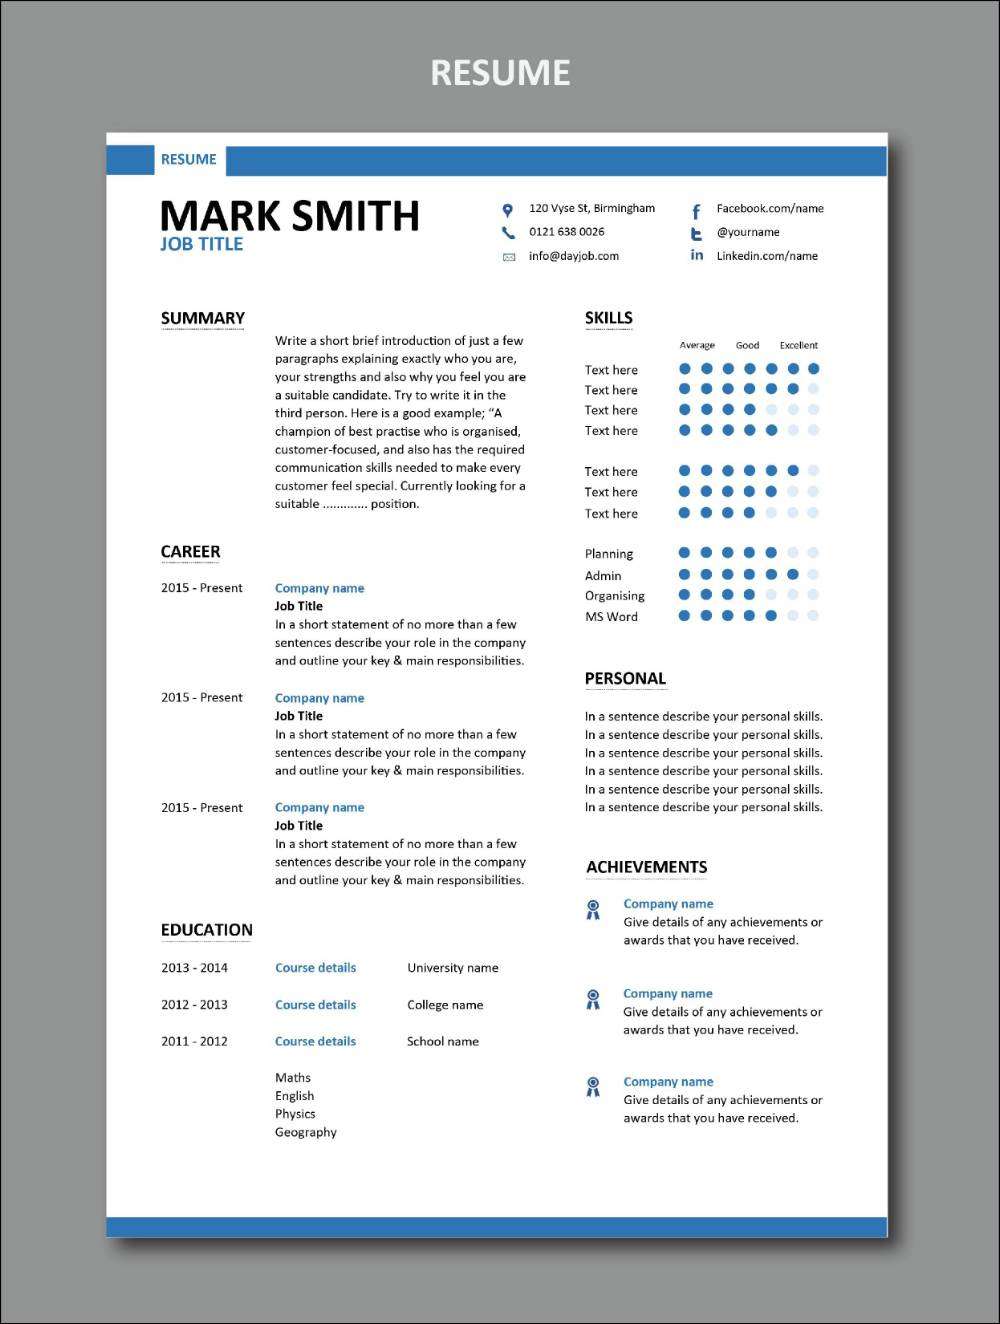 Stylish free resume template set forecasting to wear for on every day in 2019